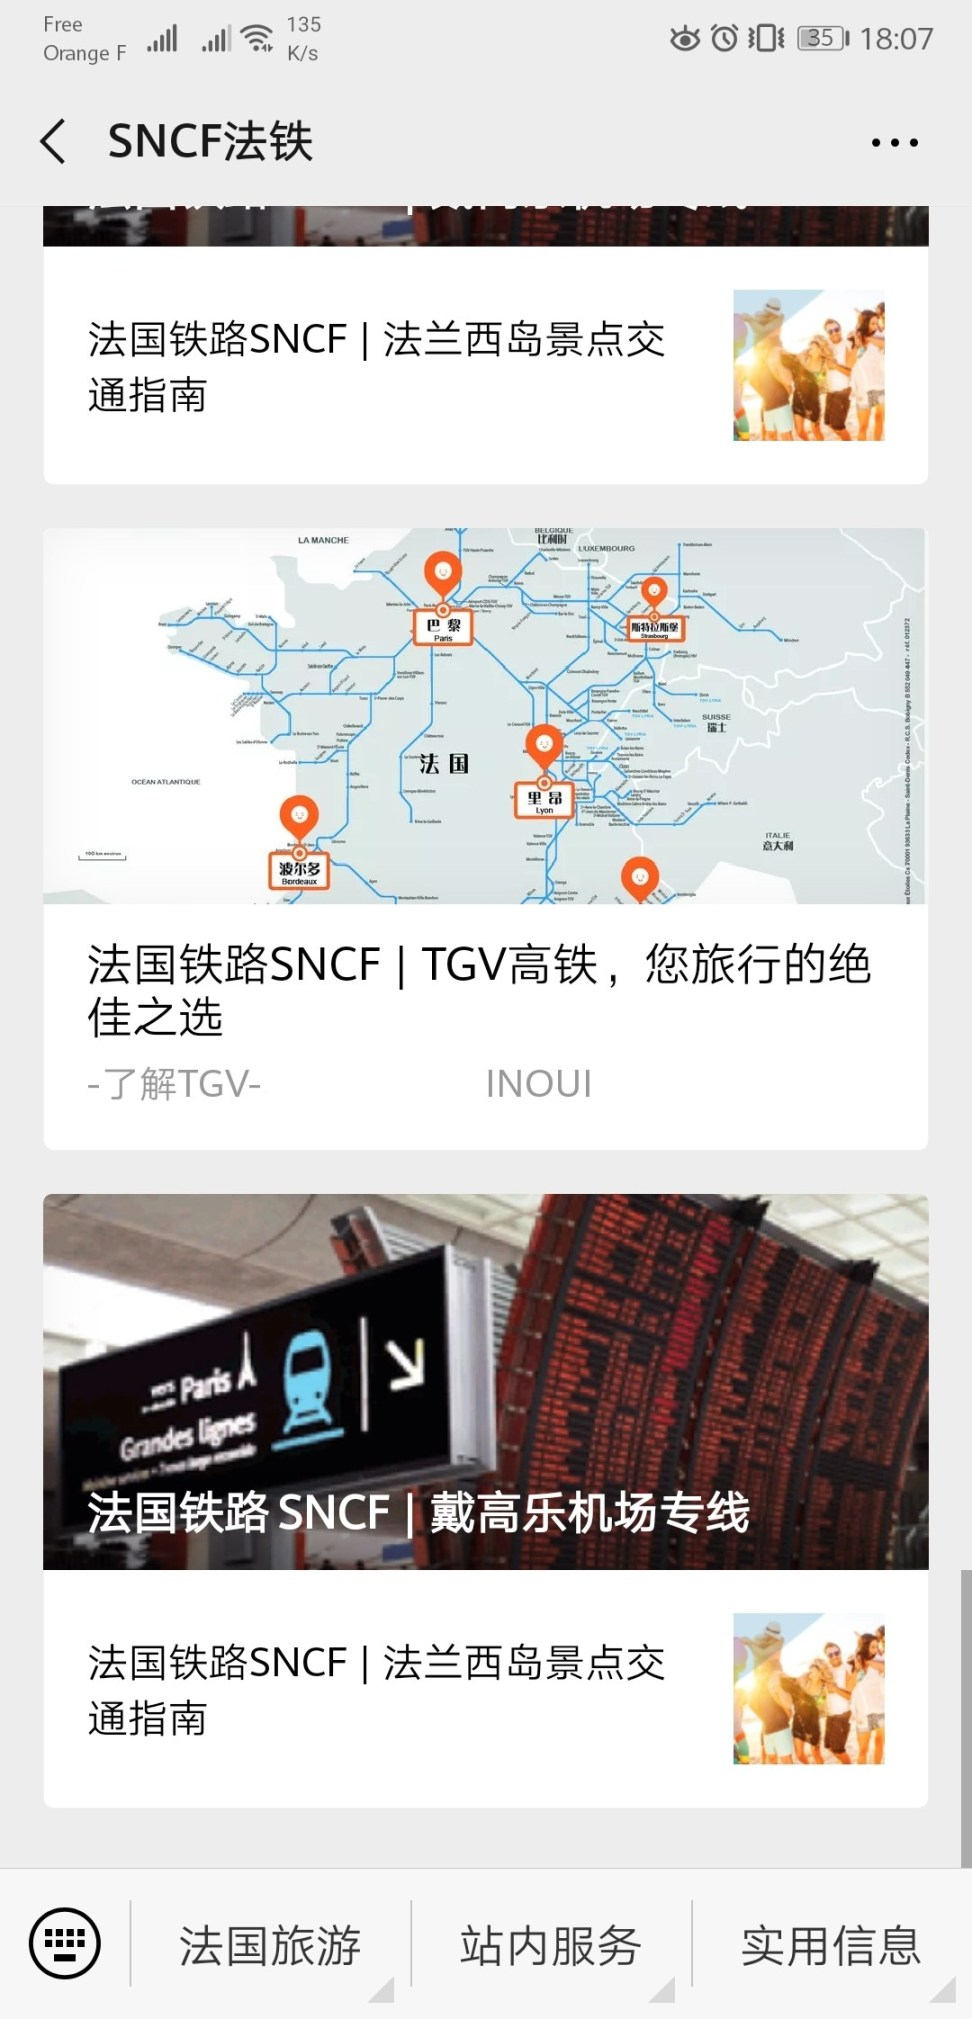 SNCF WeChat official account